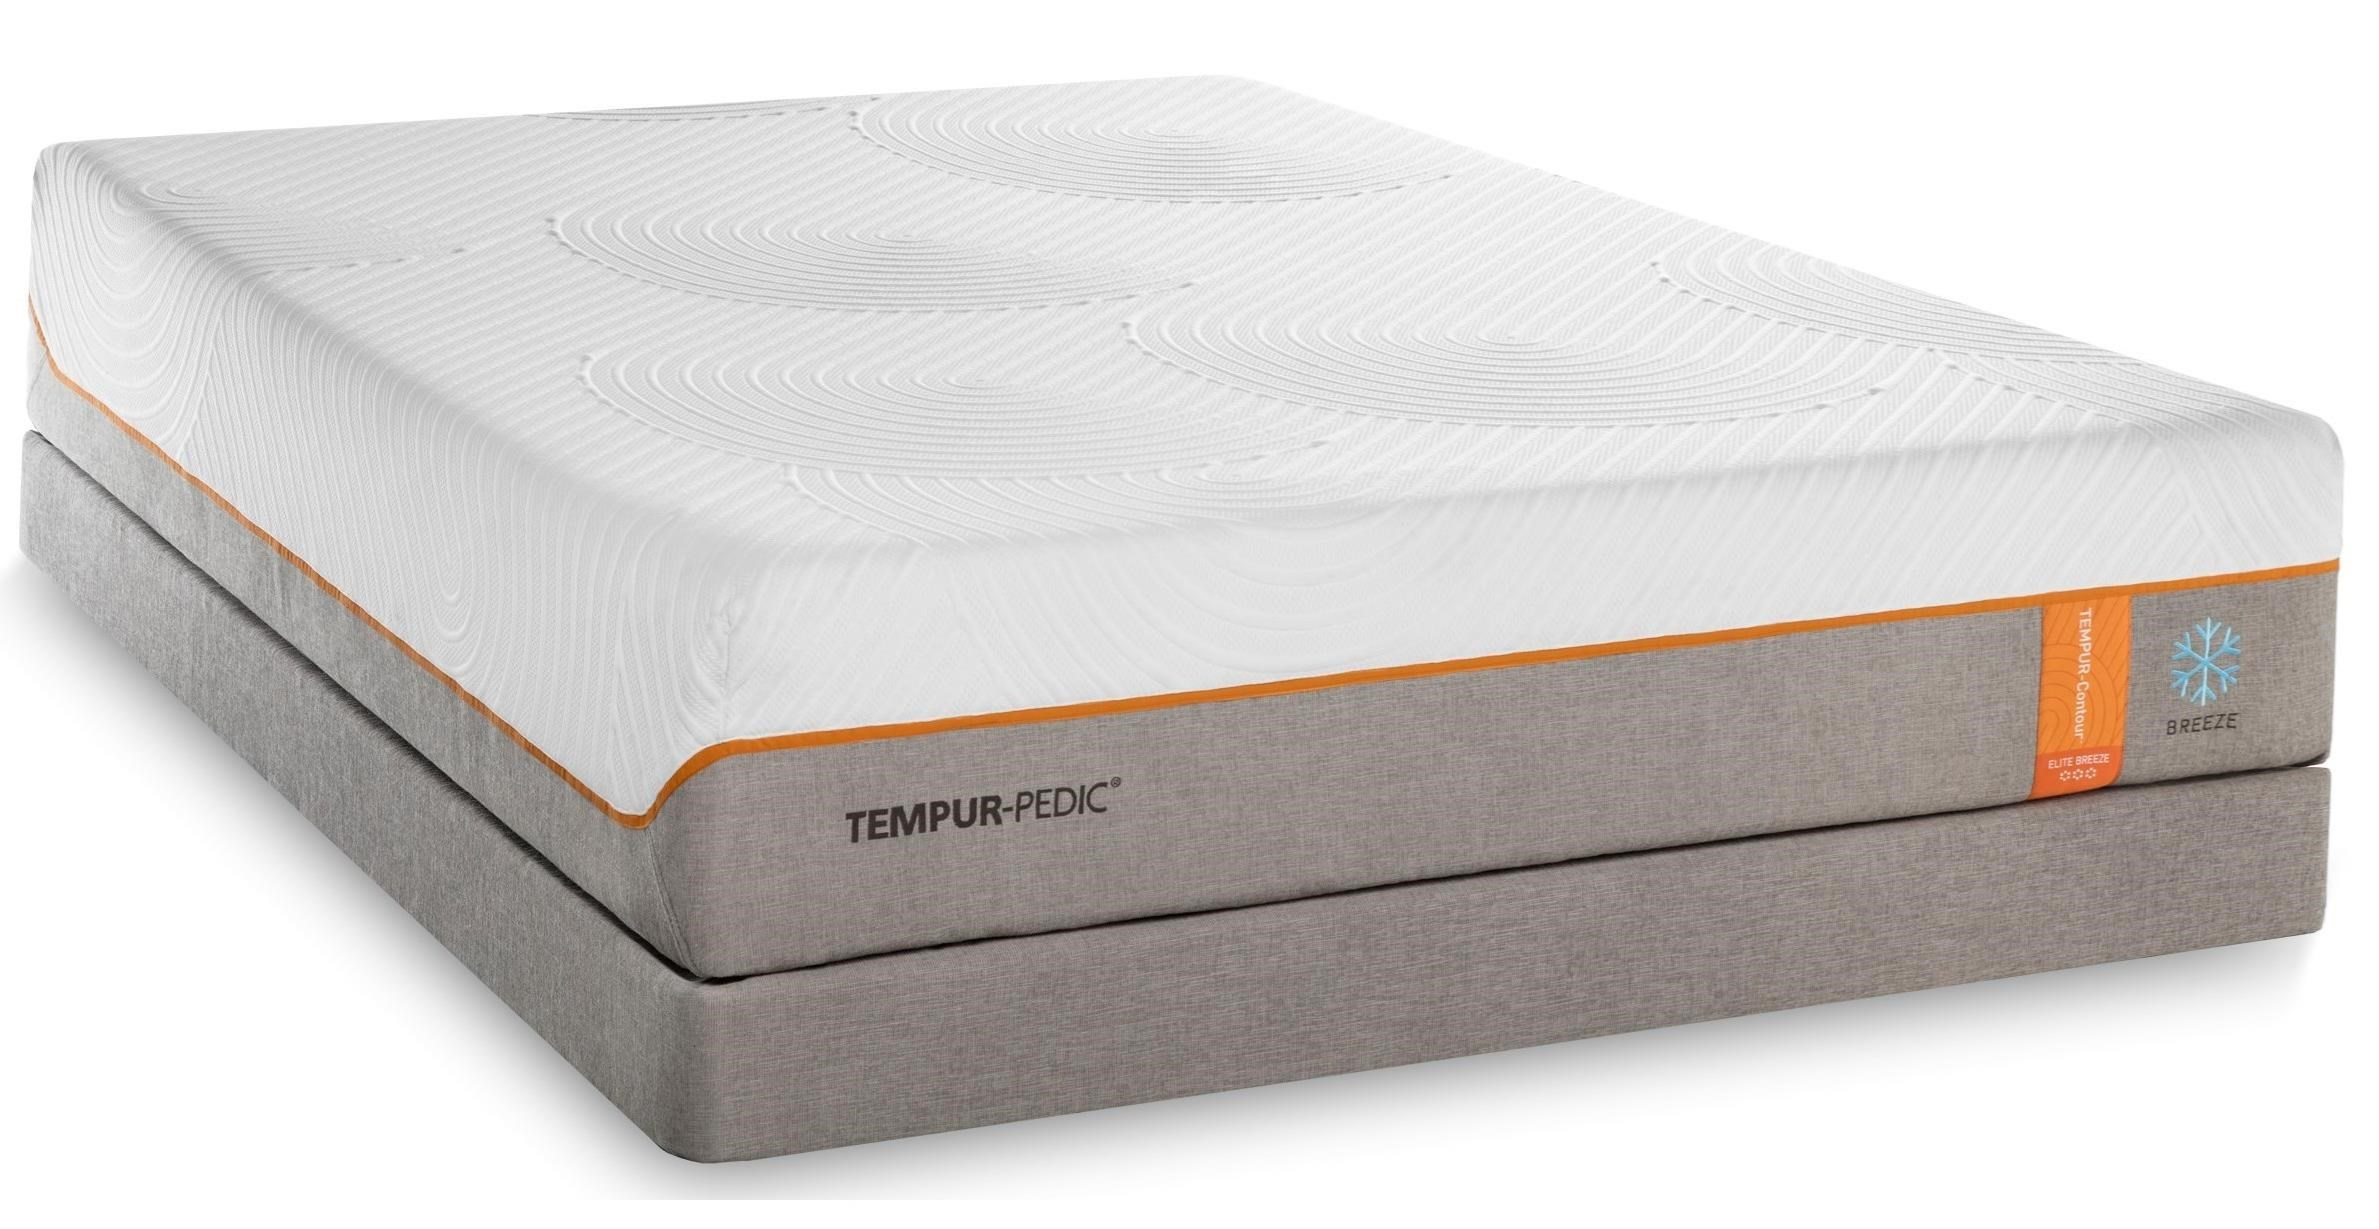 Mattress Firm Cincinnati Tempur Pedic Tempur Contour Elite Breeze King Medium Firm